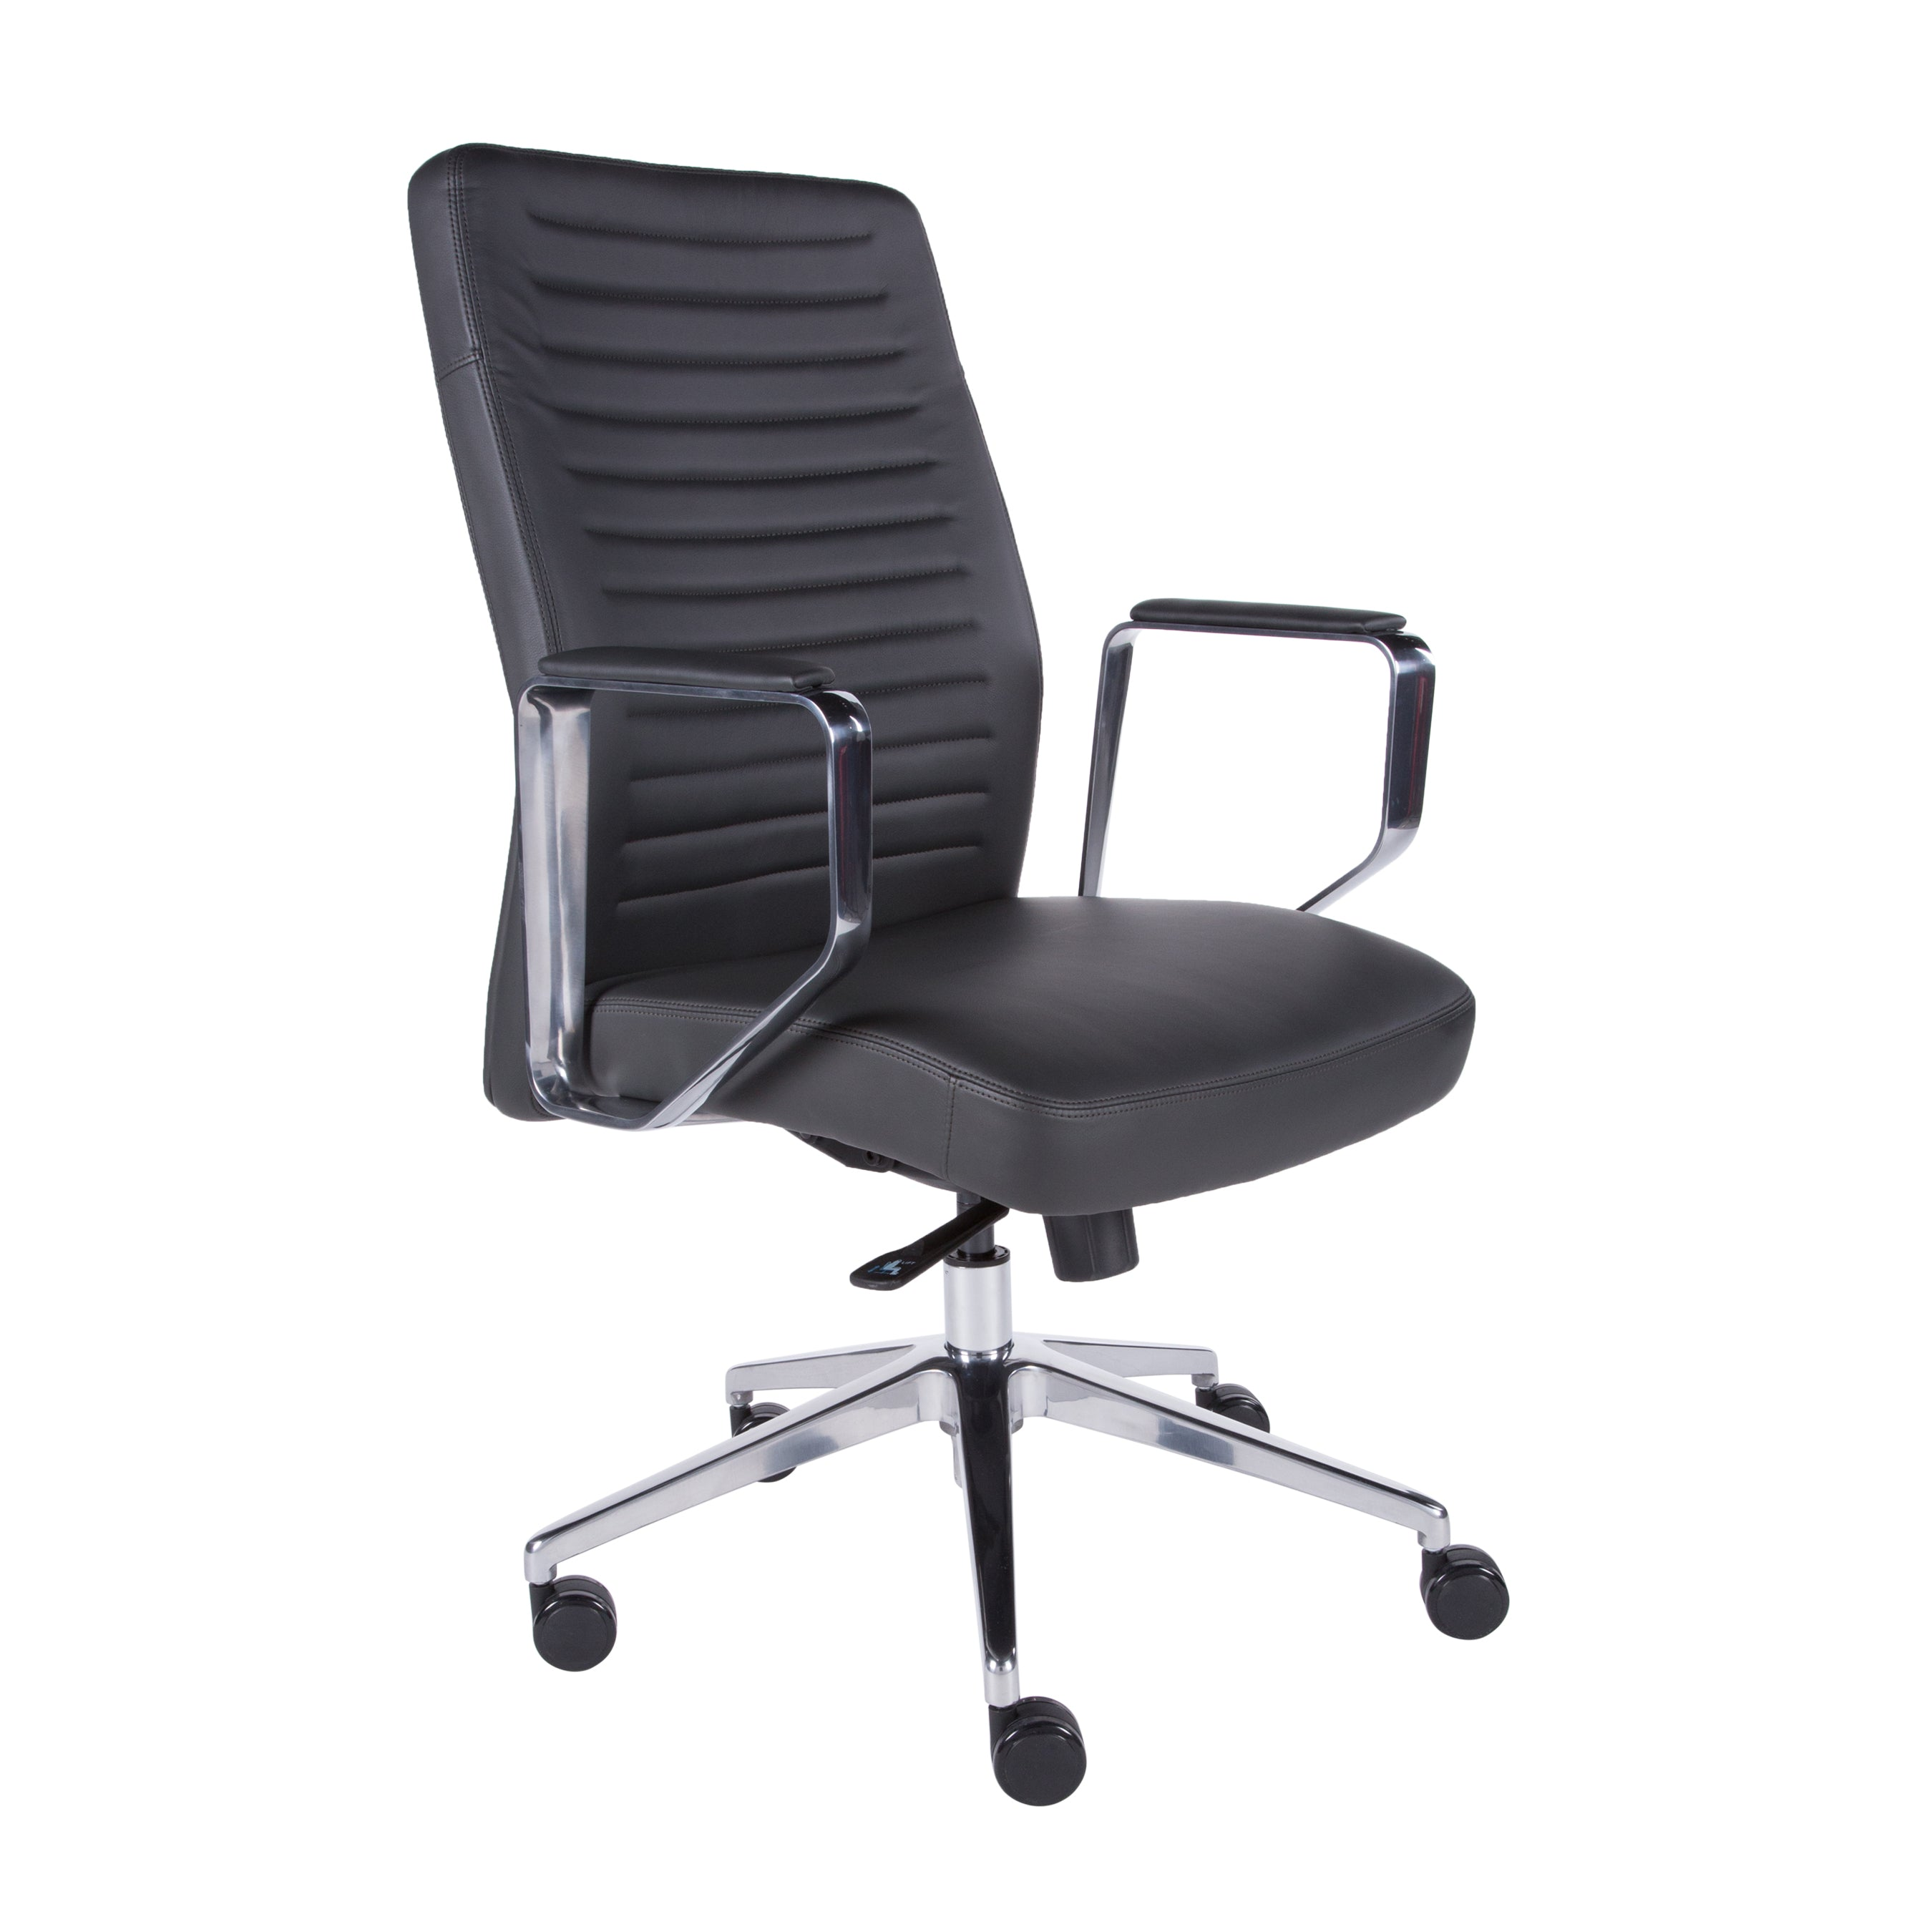 Dark Gray Padded Office Chair in Classic Design